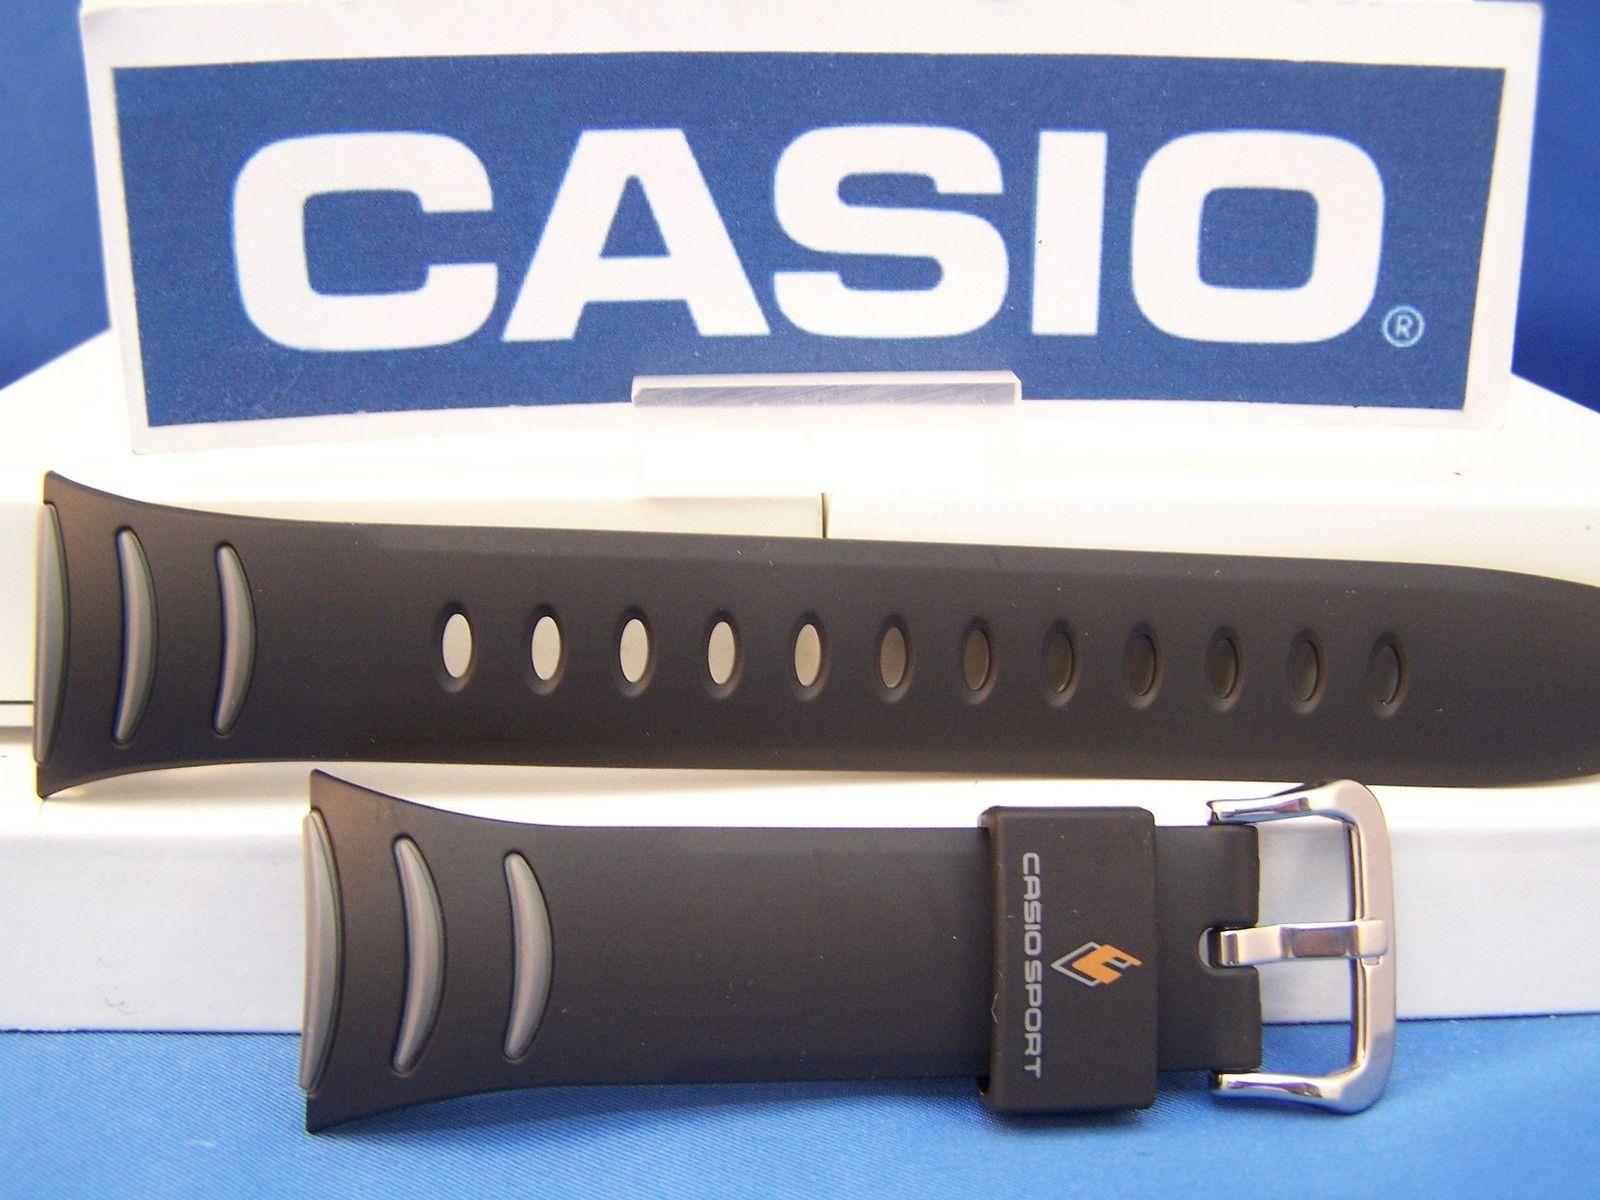 Casio watchband PRG-100  Twin Sensor Black Resin  w/ Gray Decor